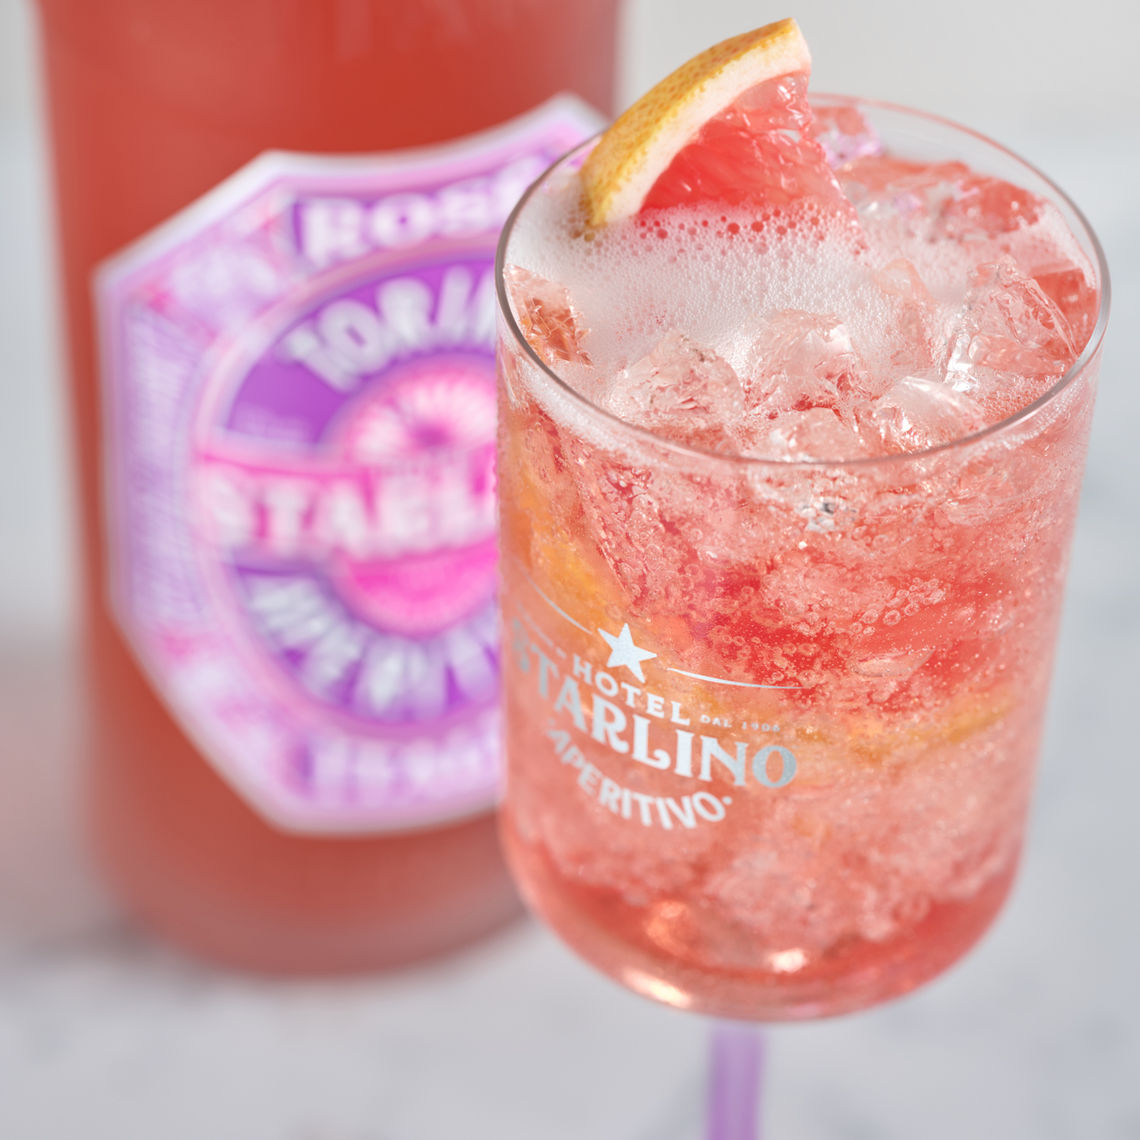 starlinococktail rosespritz4 f